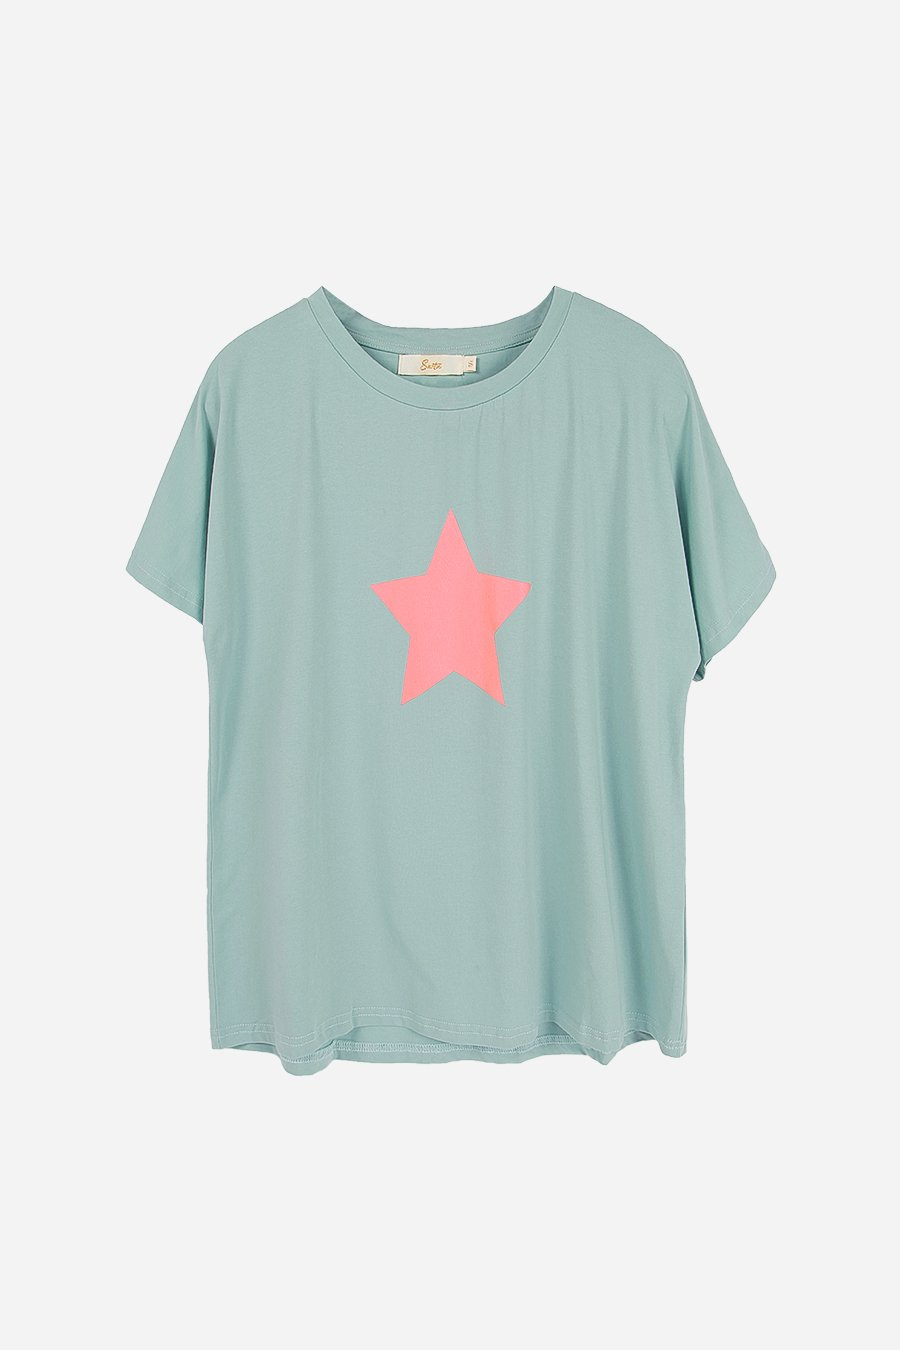 sage green t shirt with pink star